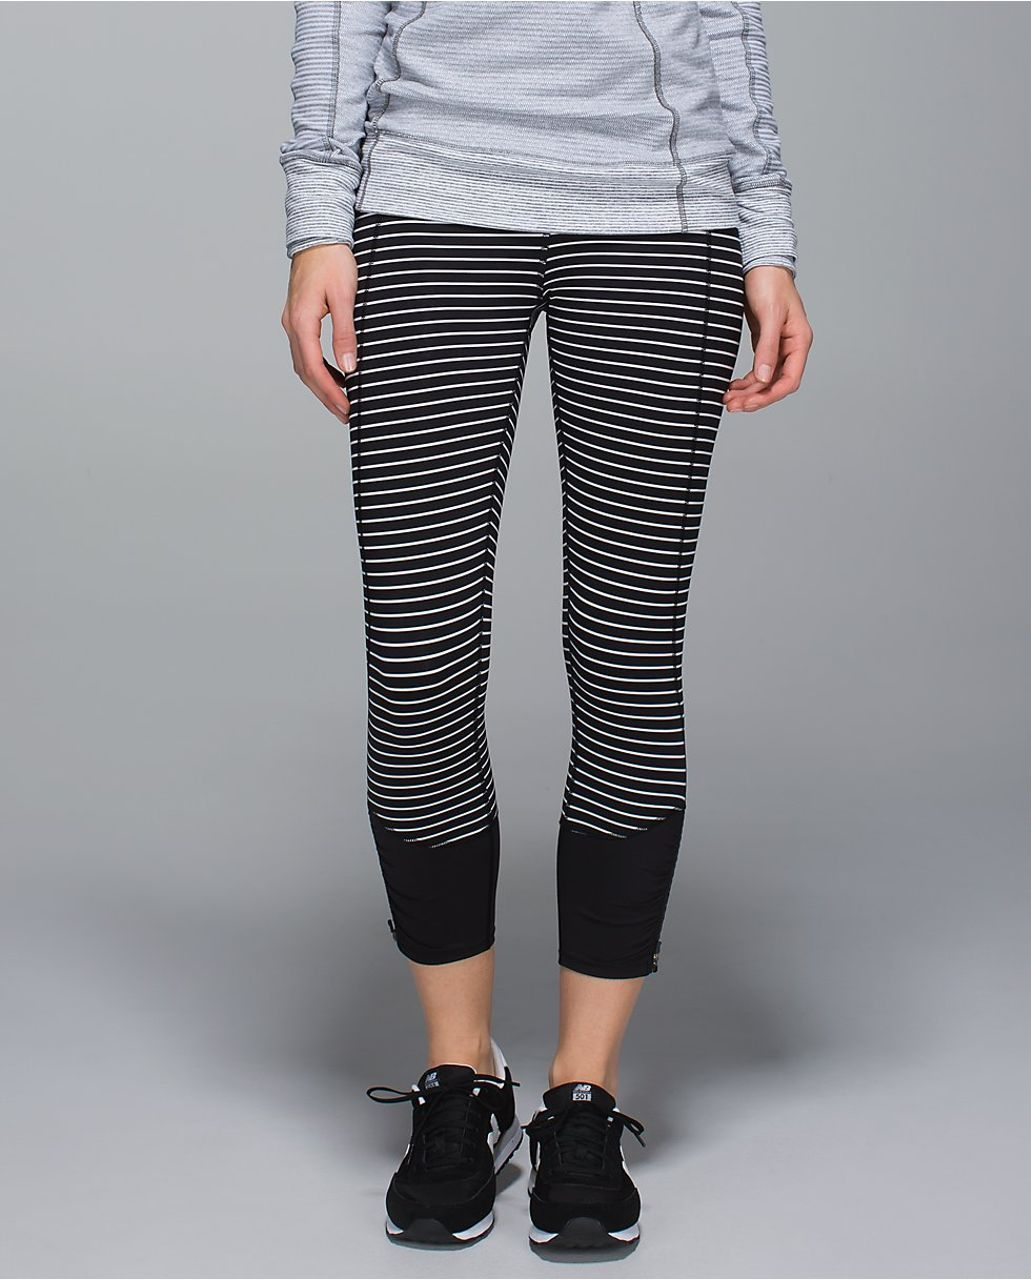 9402ea4f55a00a Image result for Lululemon black white striped crop leggings zipper at ankle